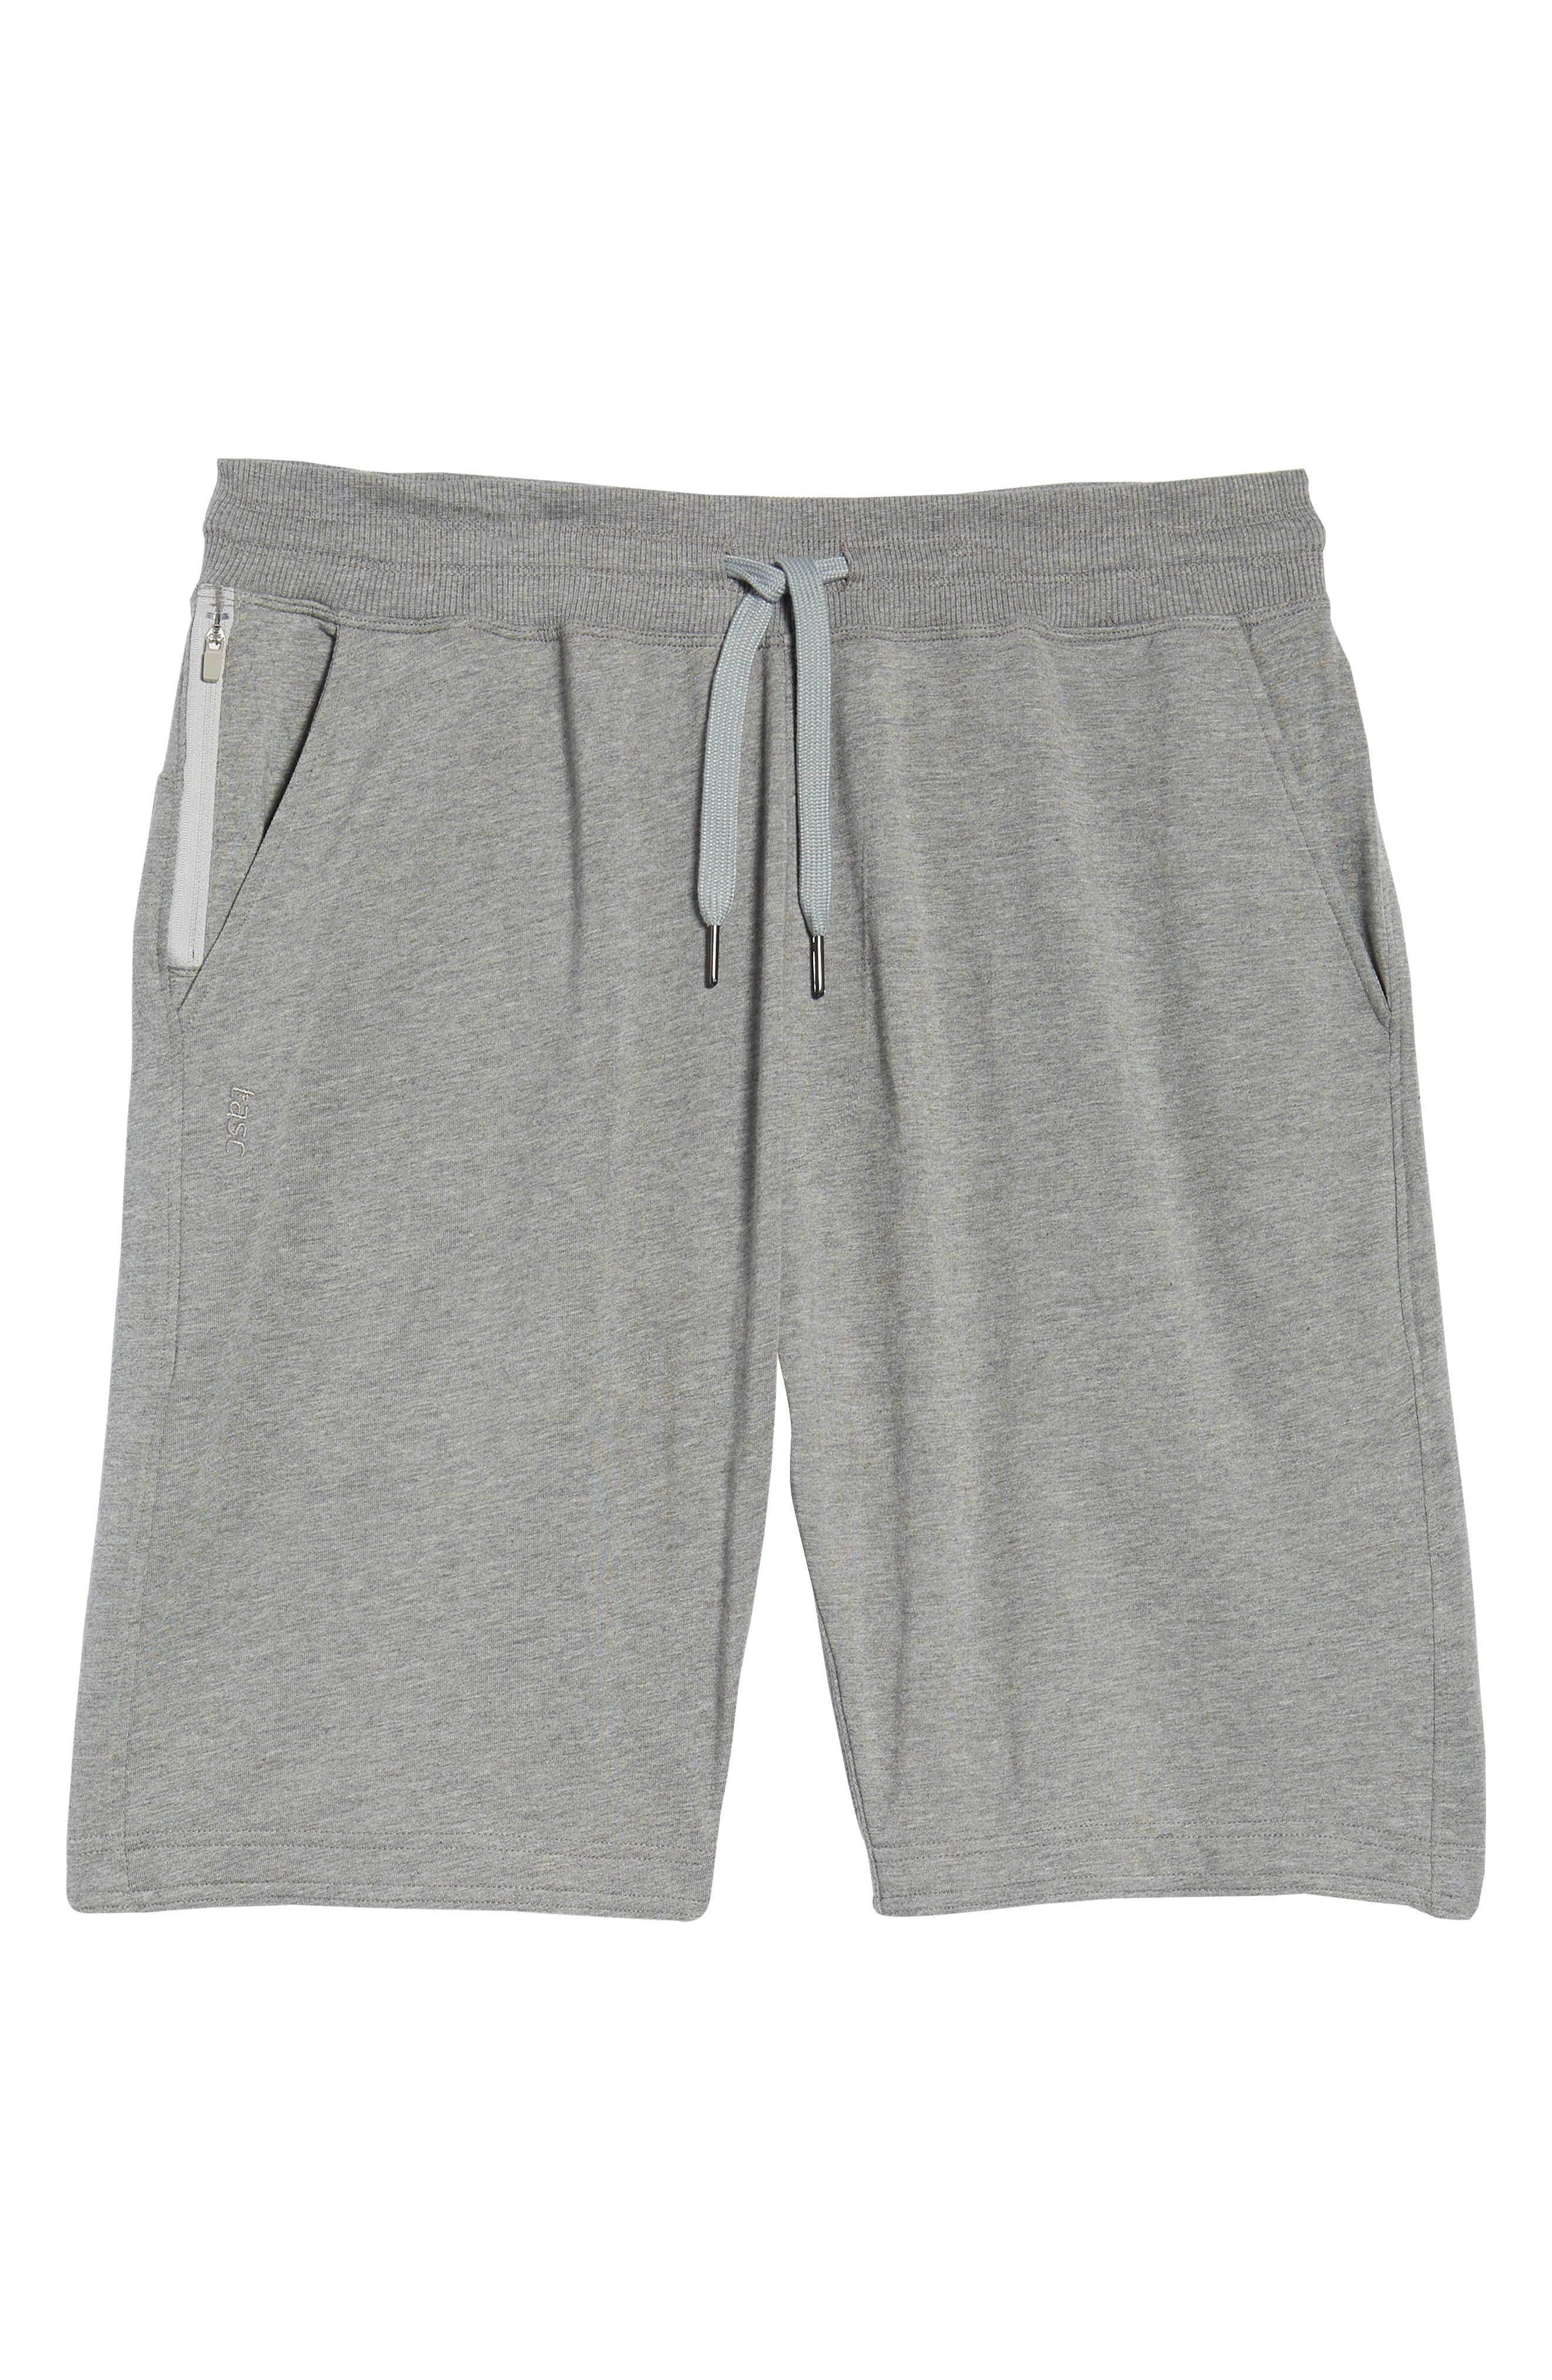 Legacy Lounge Shorts,                             Alternate thumbnail 6, color,                             Heather Grey